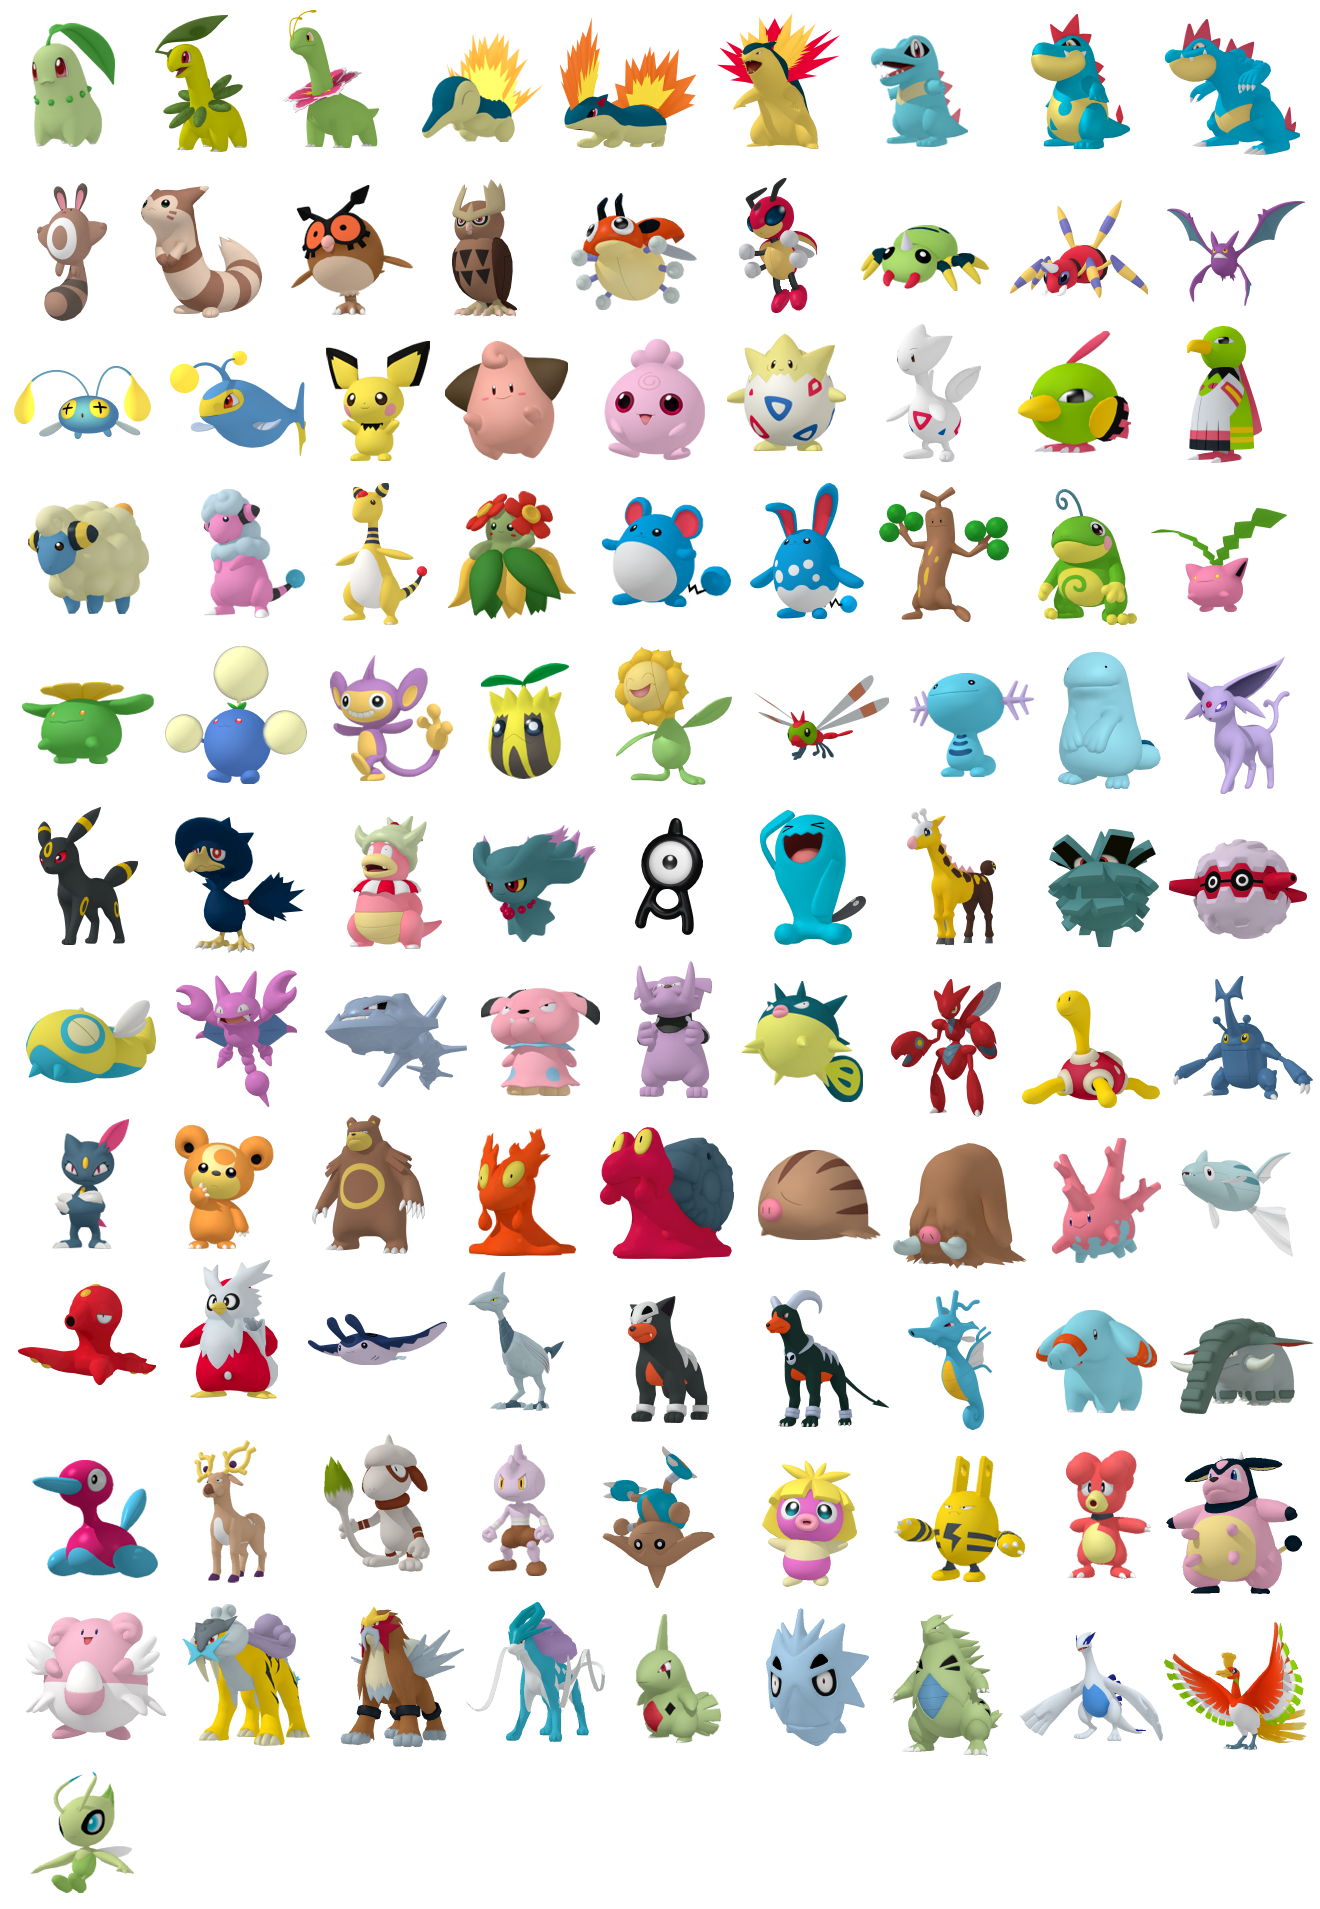 Pokemon 3D Pro Johto Dex by KrocF4 on deviantART | Pokémon | Pokémon ...